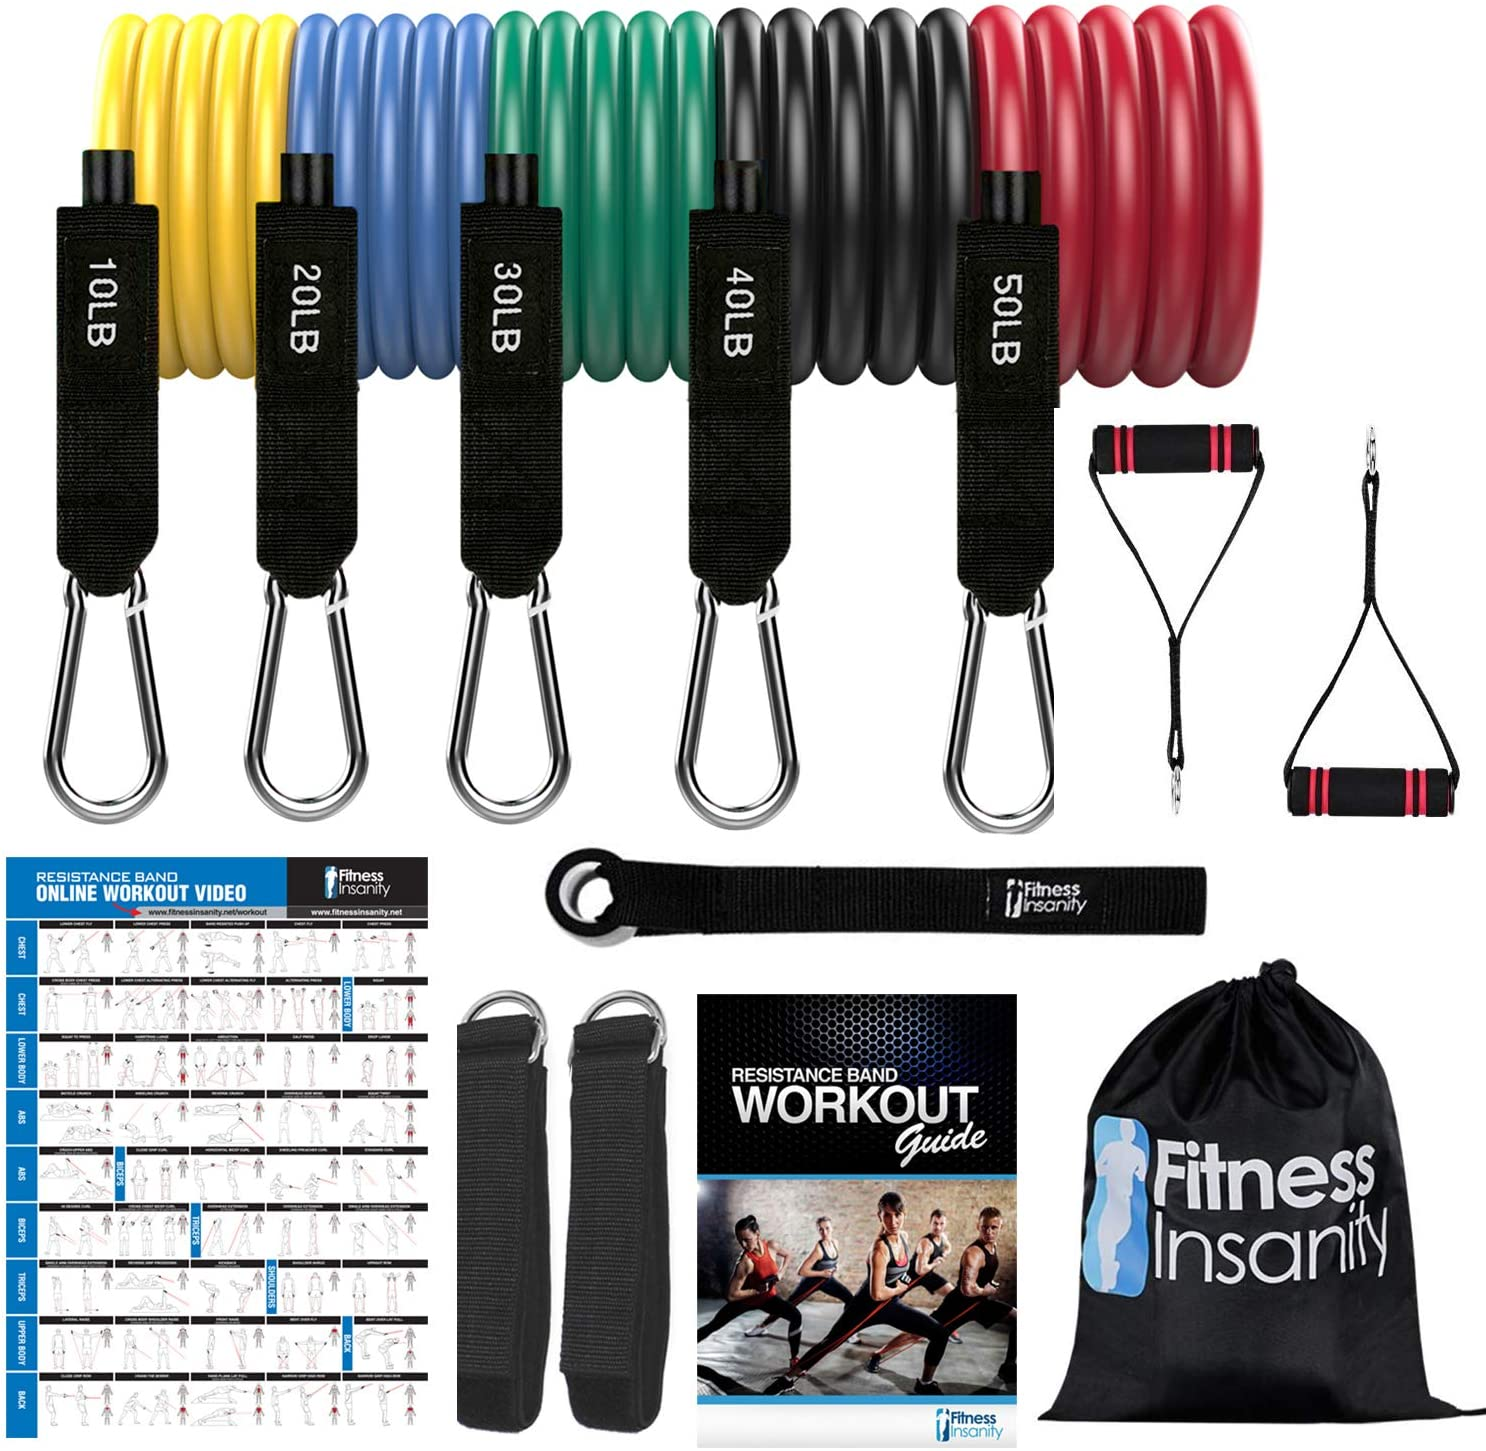 Fitness Insanity Resistance Bands, best resistance bands